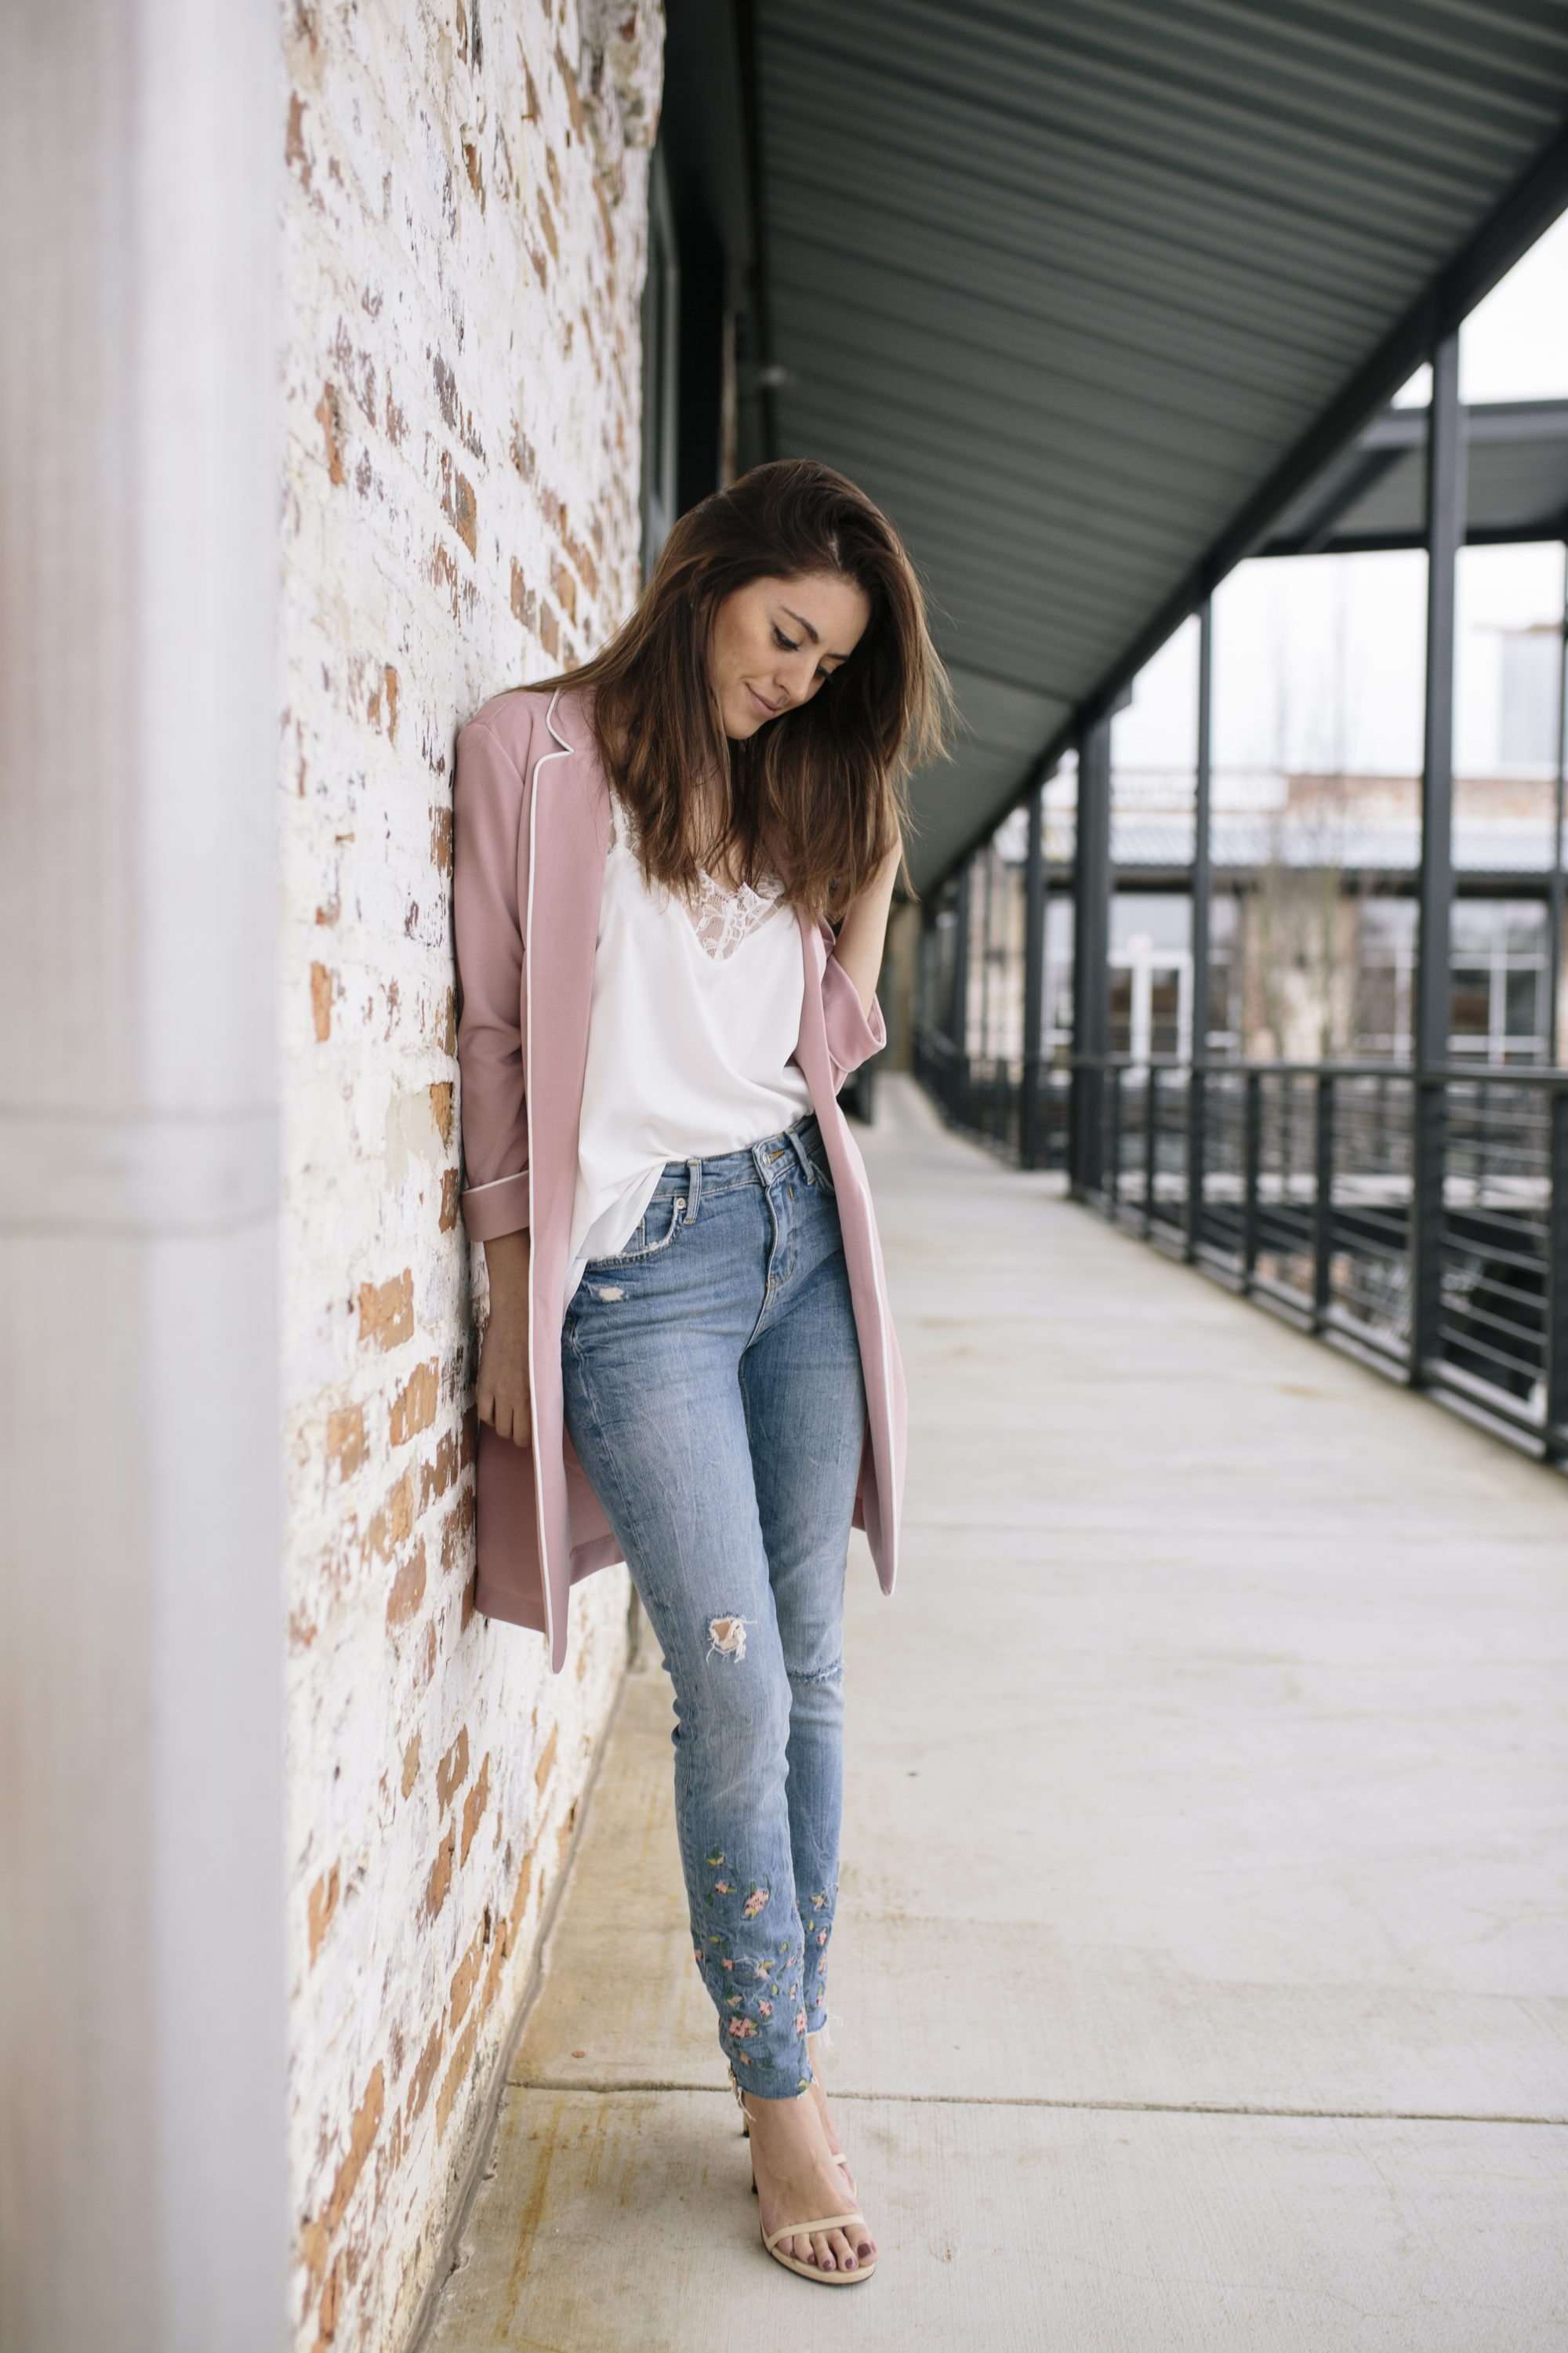 wet seal MORNING RISE DUSTER BLAZER IN LIGHT PINK, press lace tank, spring transition outfit ideas, how to wear pink, how to wear a lace camisole, spring looks, stuart weitzman nudist